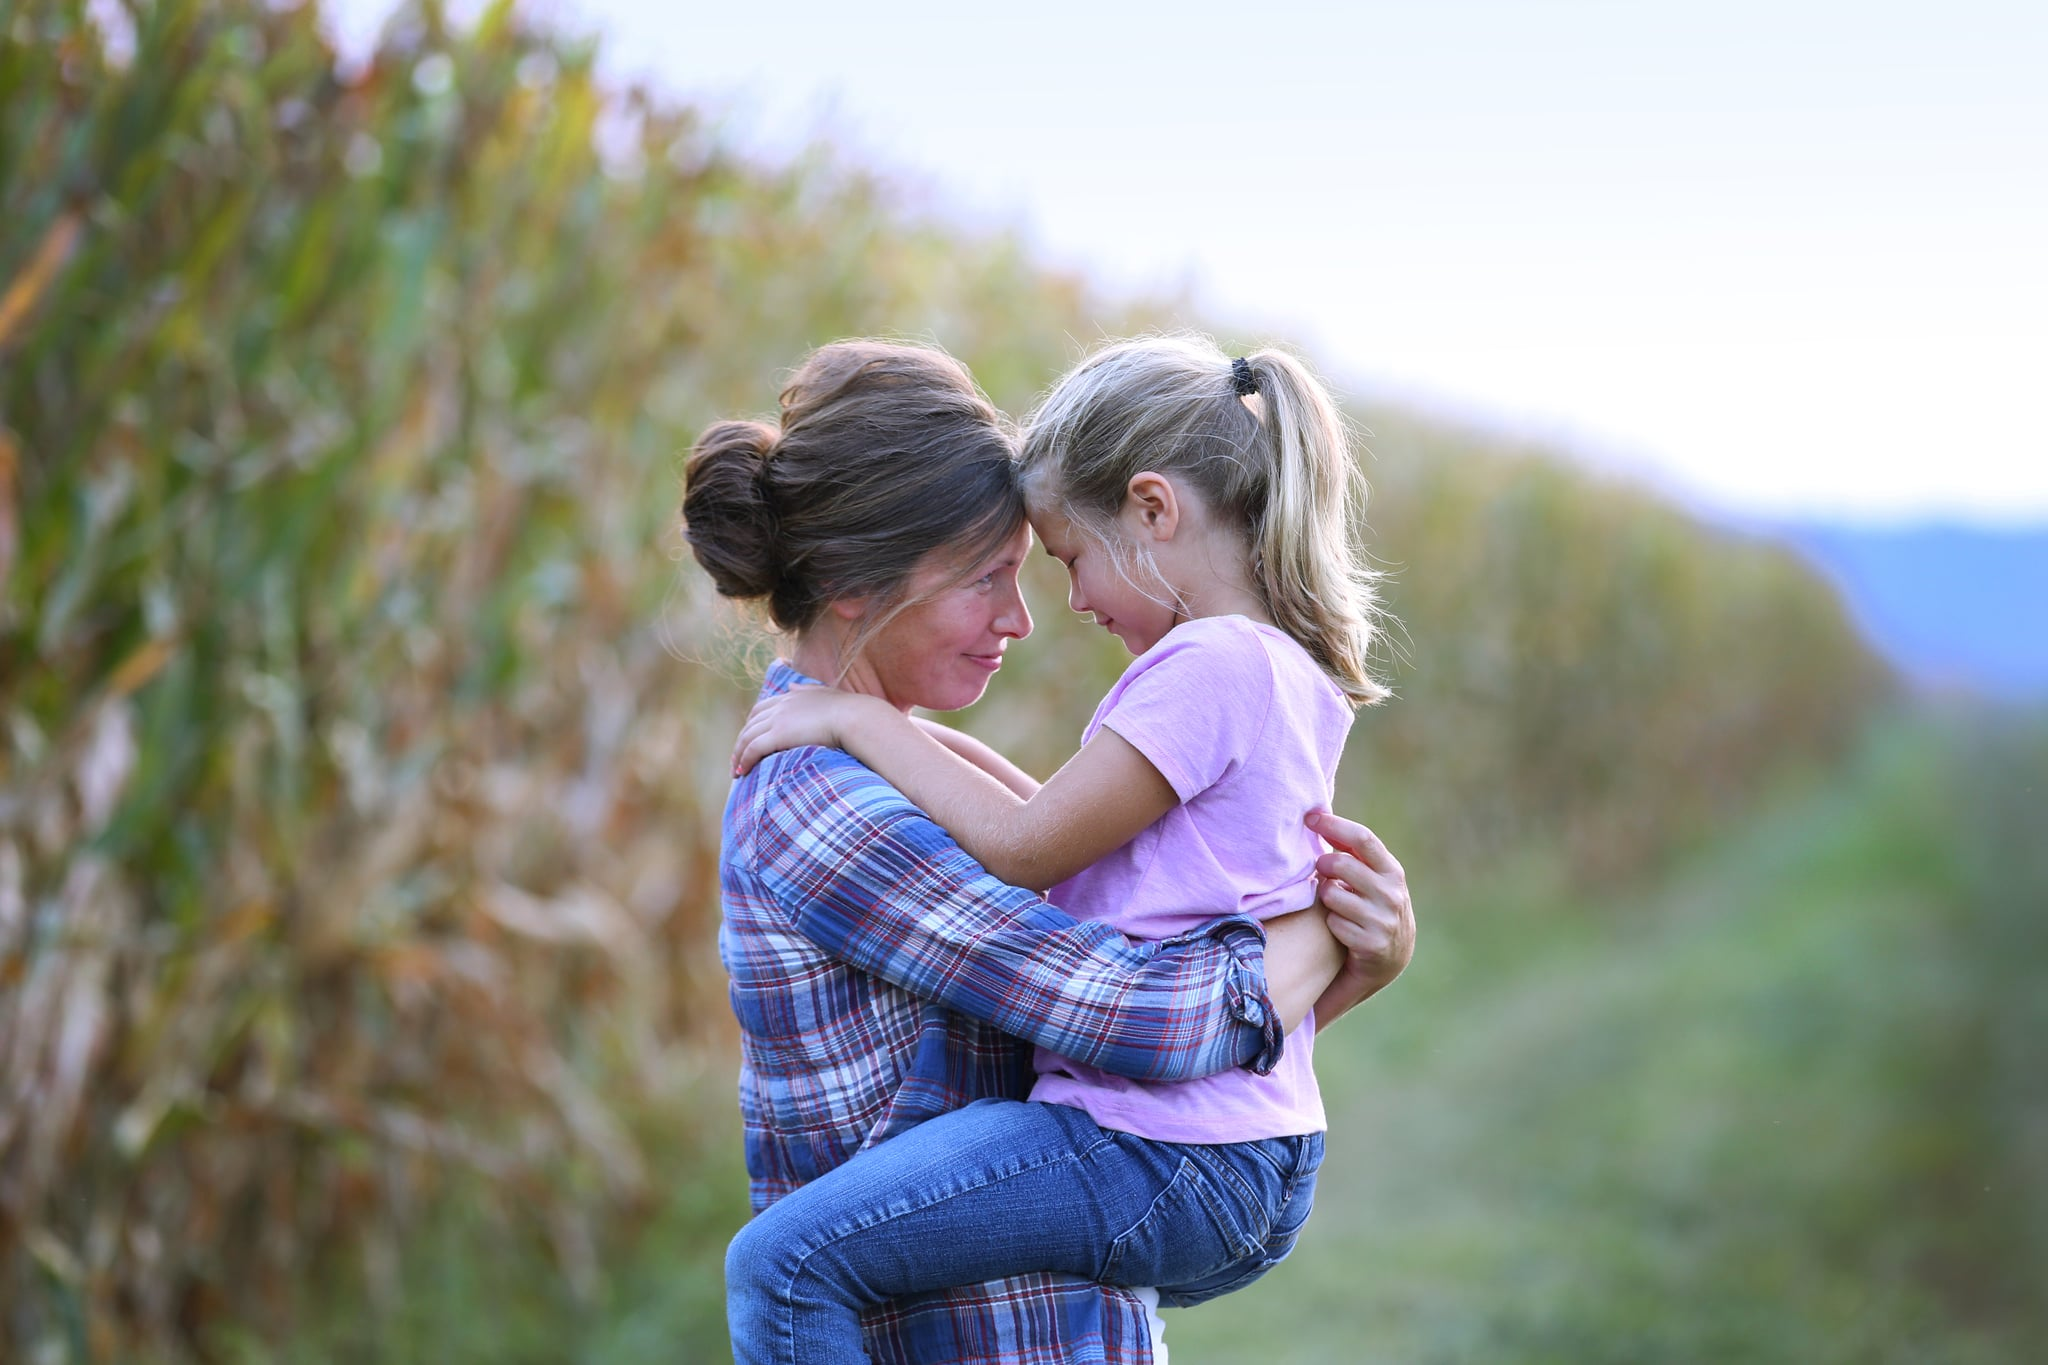 An Iowa farm mother hugs her young daughter while standing next to a field of corn.